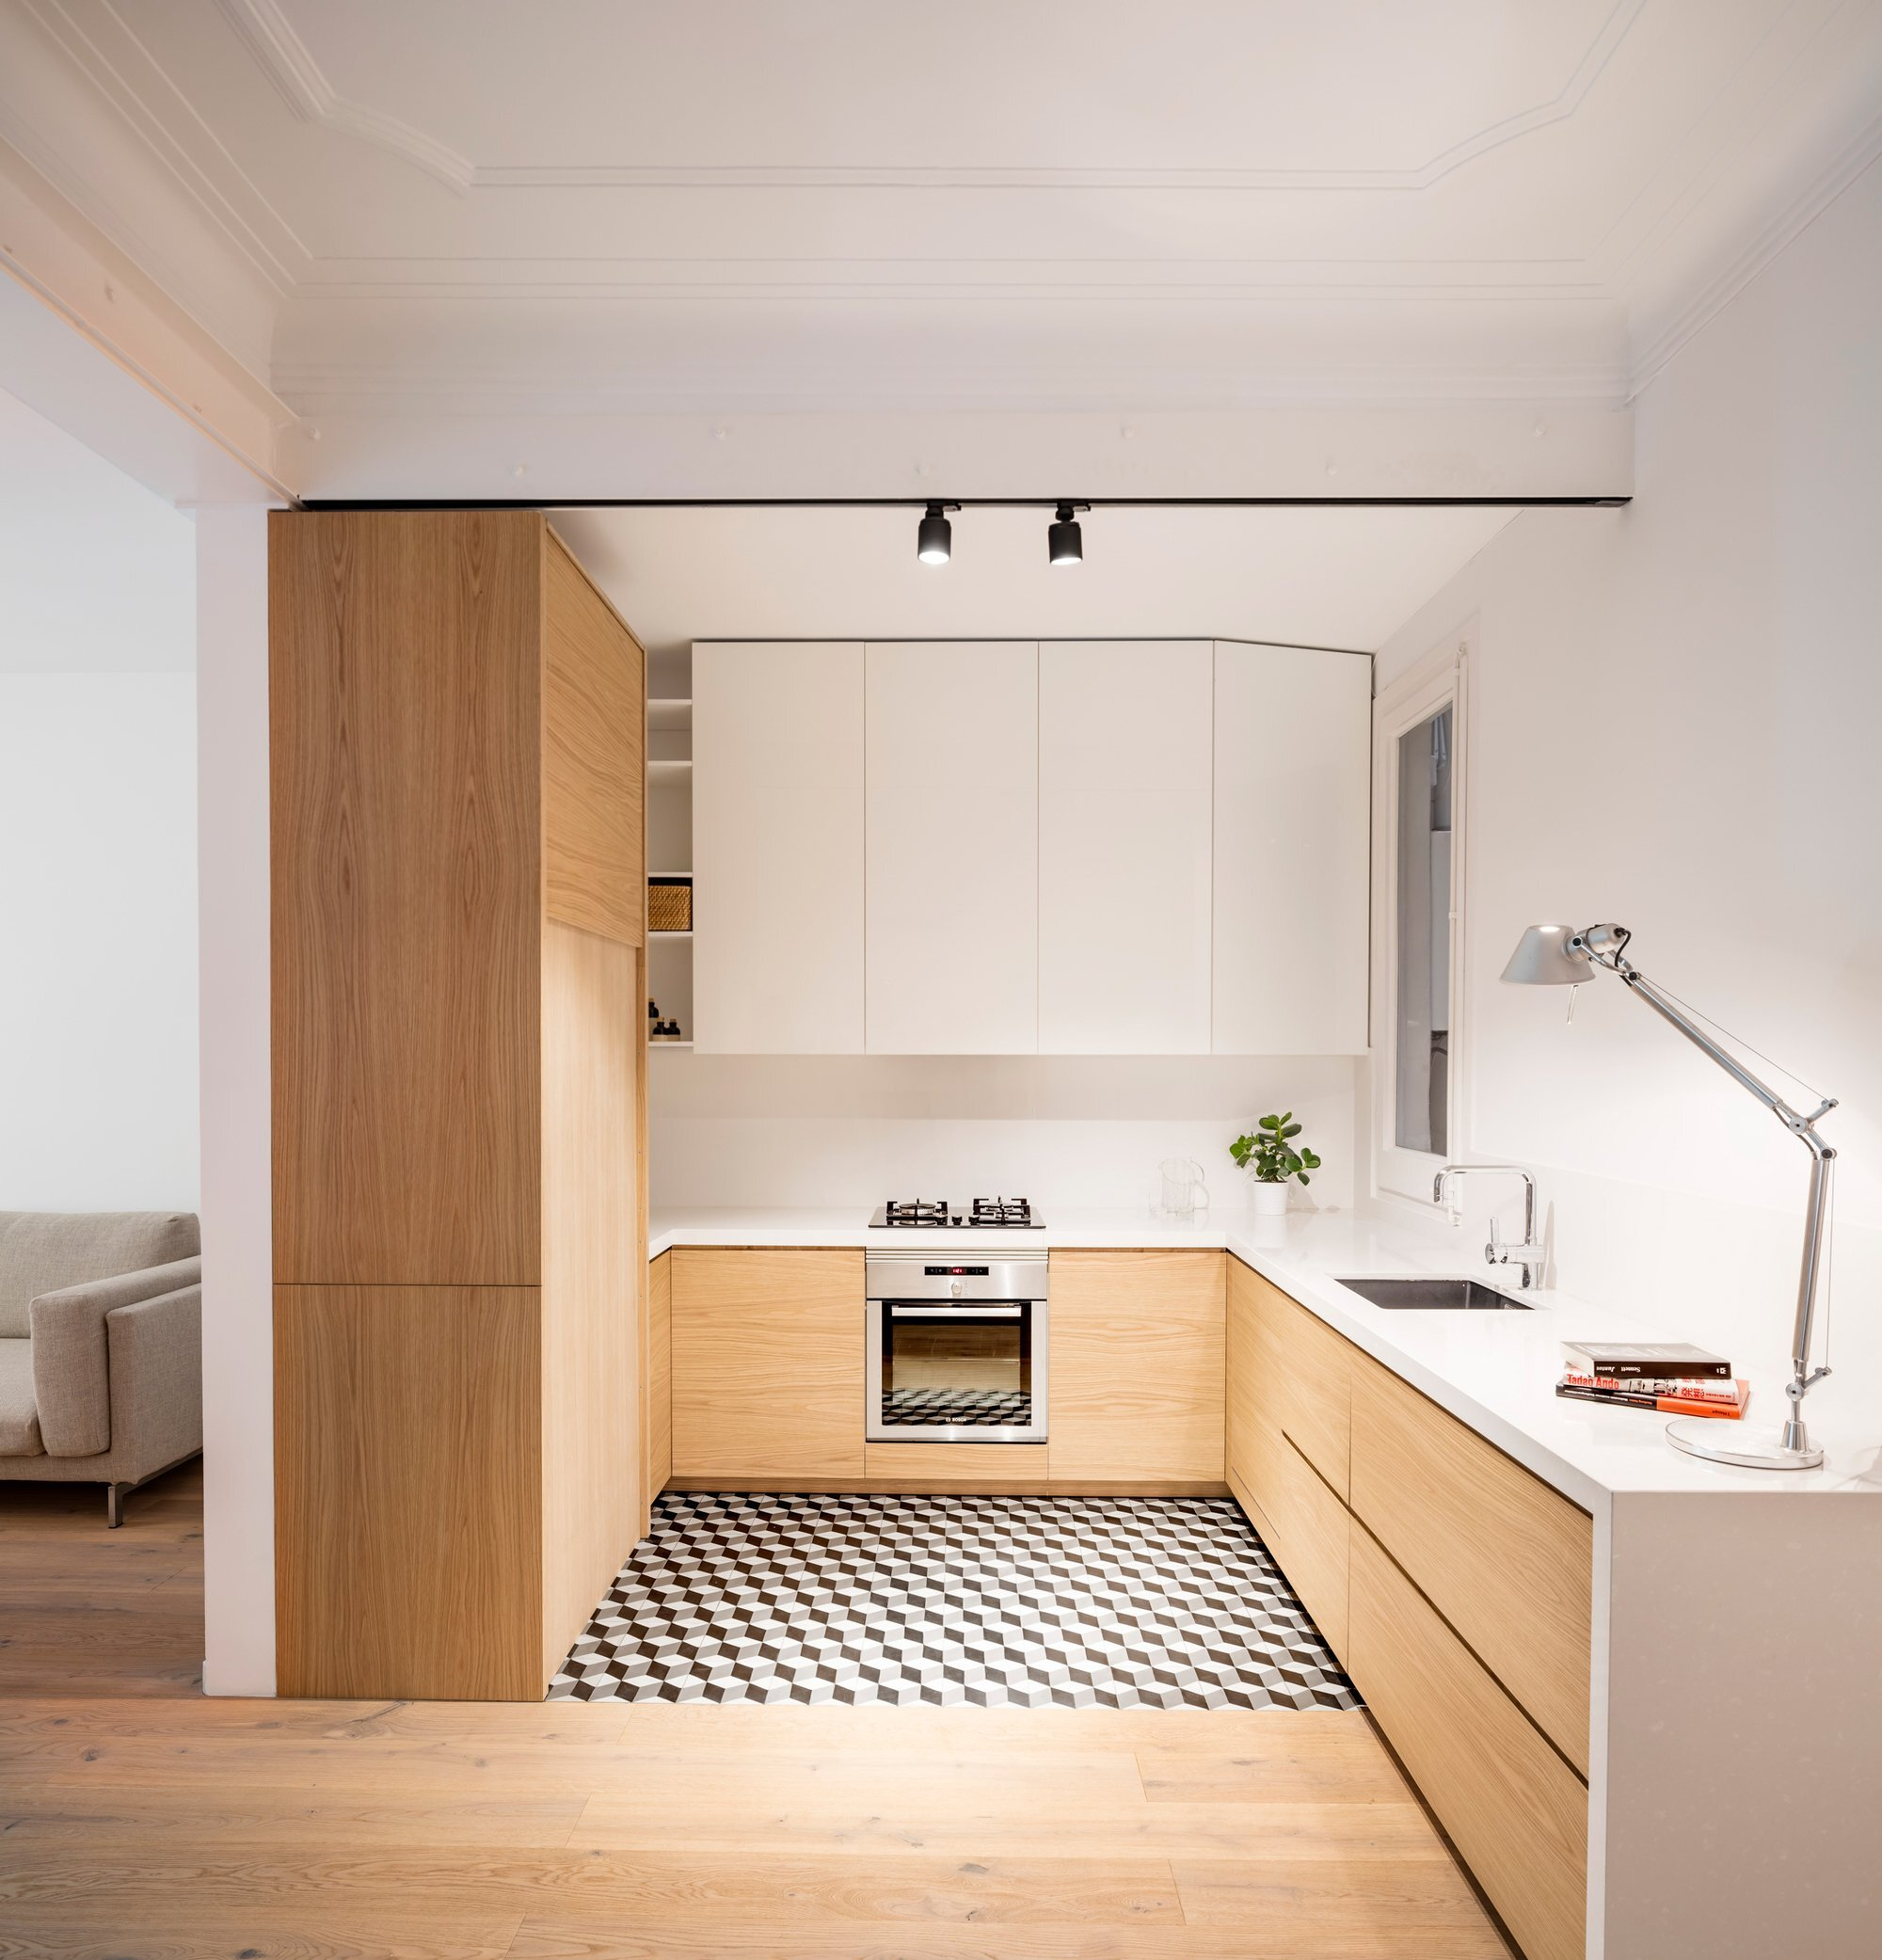 Alan's Apartment Renovation - EO arquitectura - Spain - Kitchen - Humble Homes